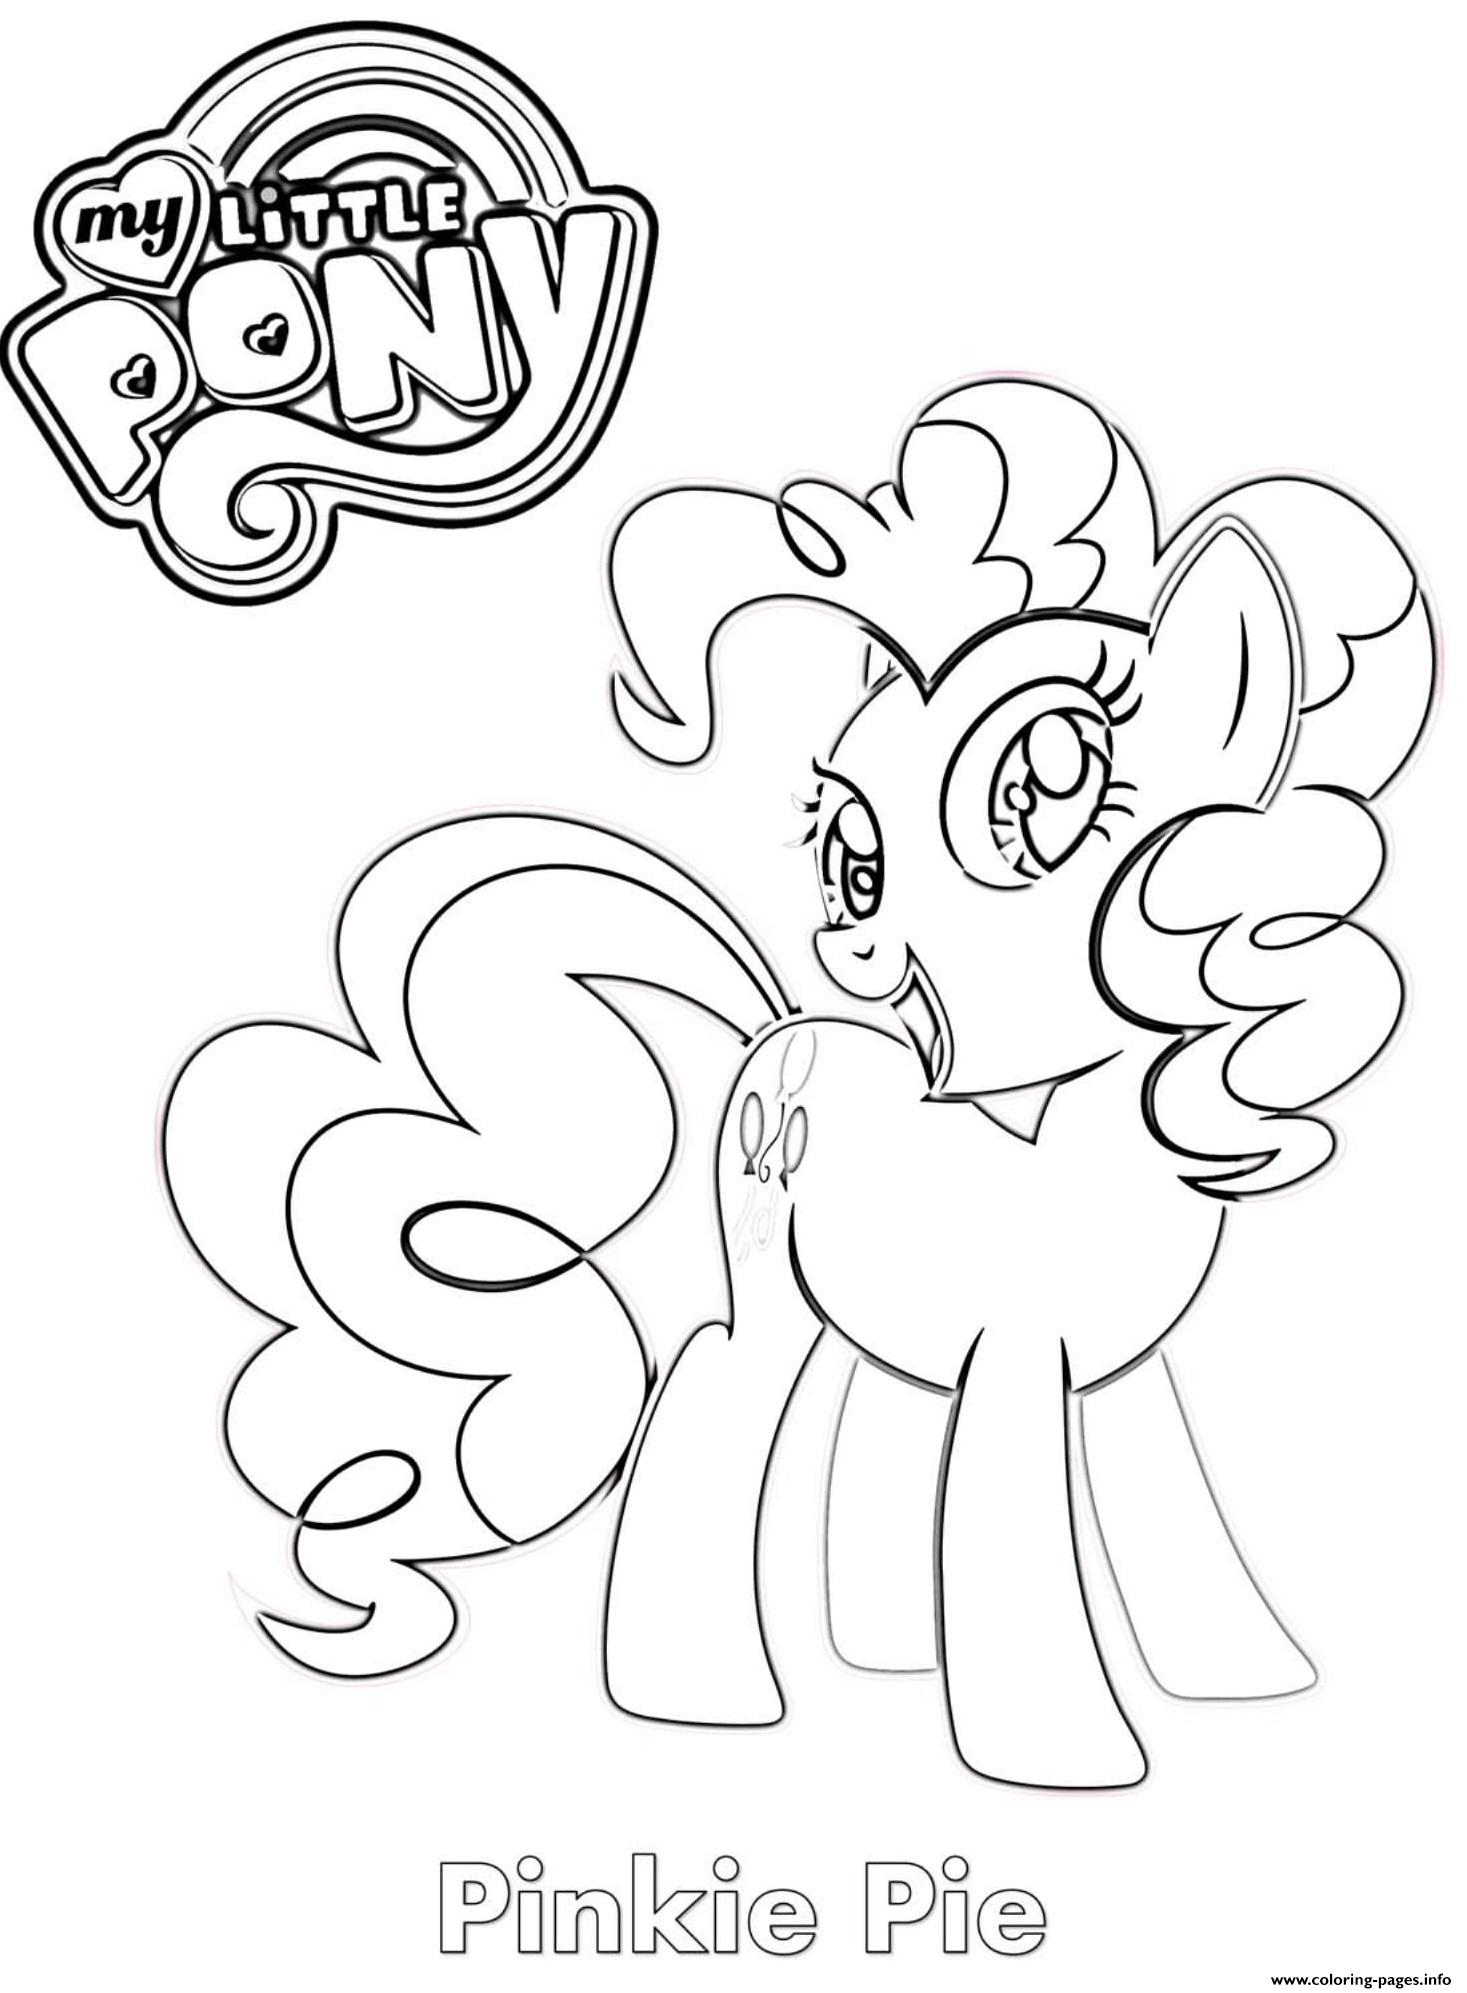 Pinkie Pie Mlp Coloring Pages Printable